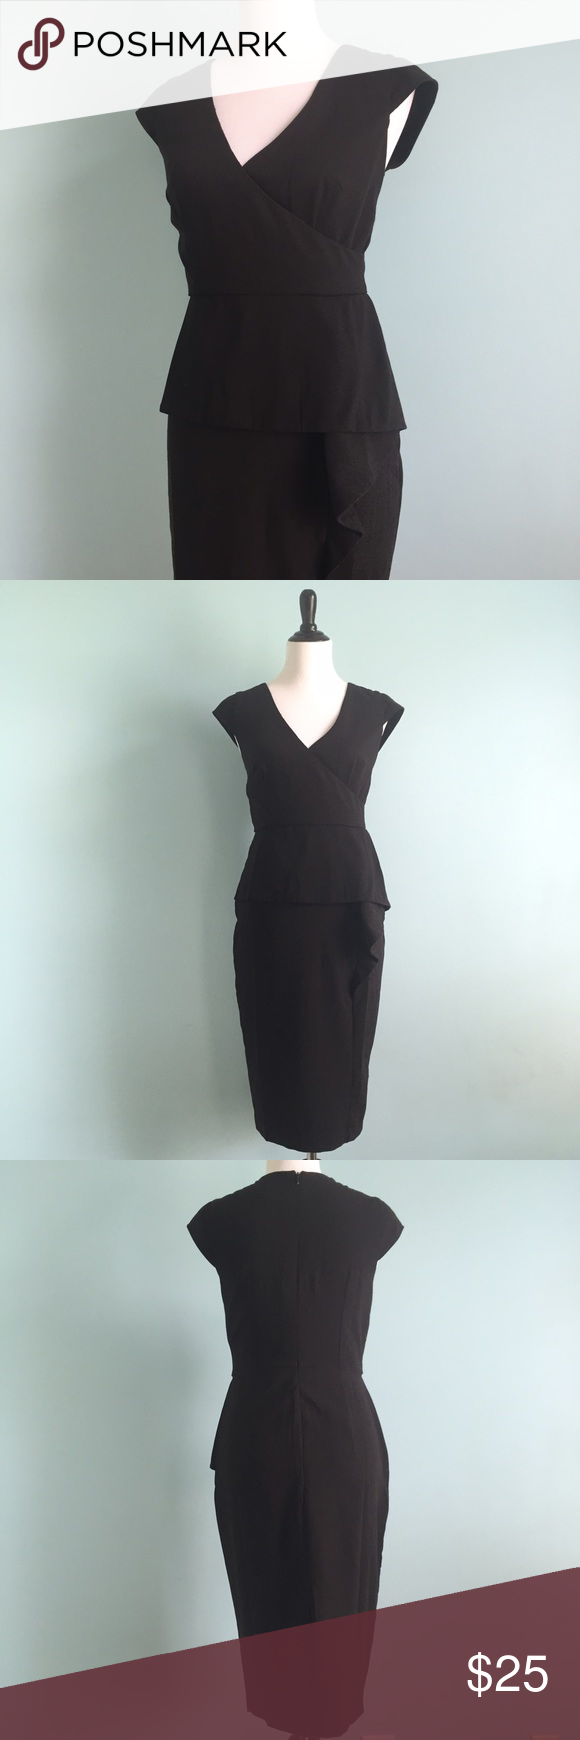 ASOS Black Dress Beautiful black midi asymmetrical dress with v-neckline. Peplum detailing with ruffle on one side. Super flattering shape and comfortable. In great condition. US size 8. Asos Dresses Midi